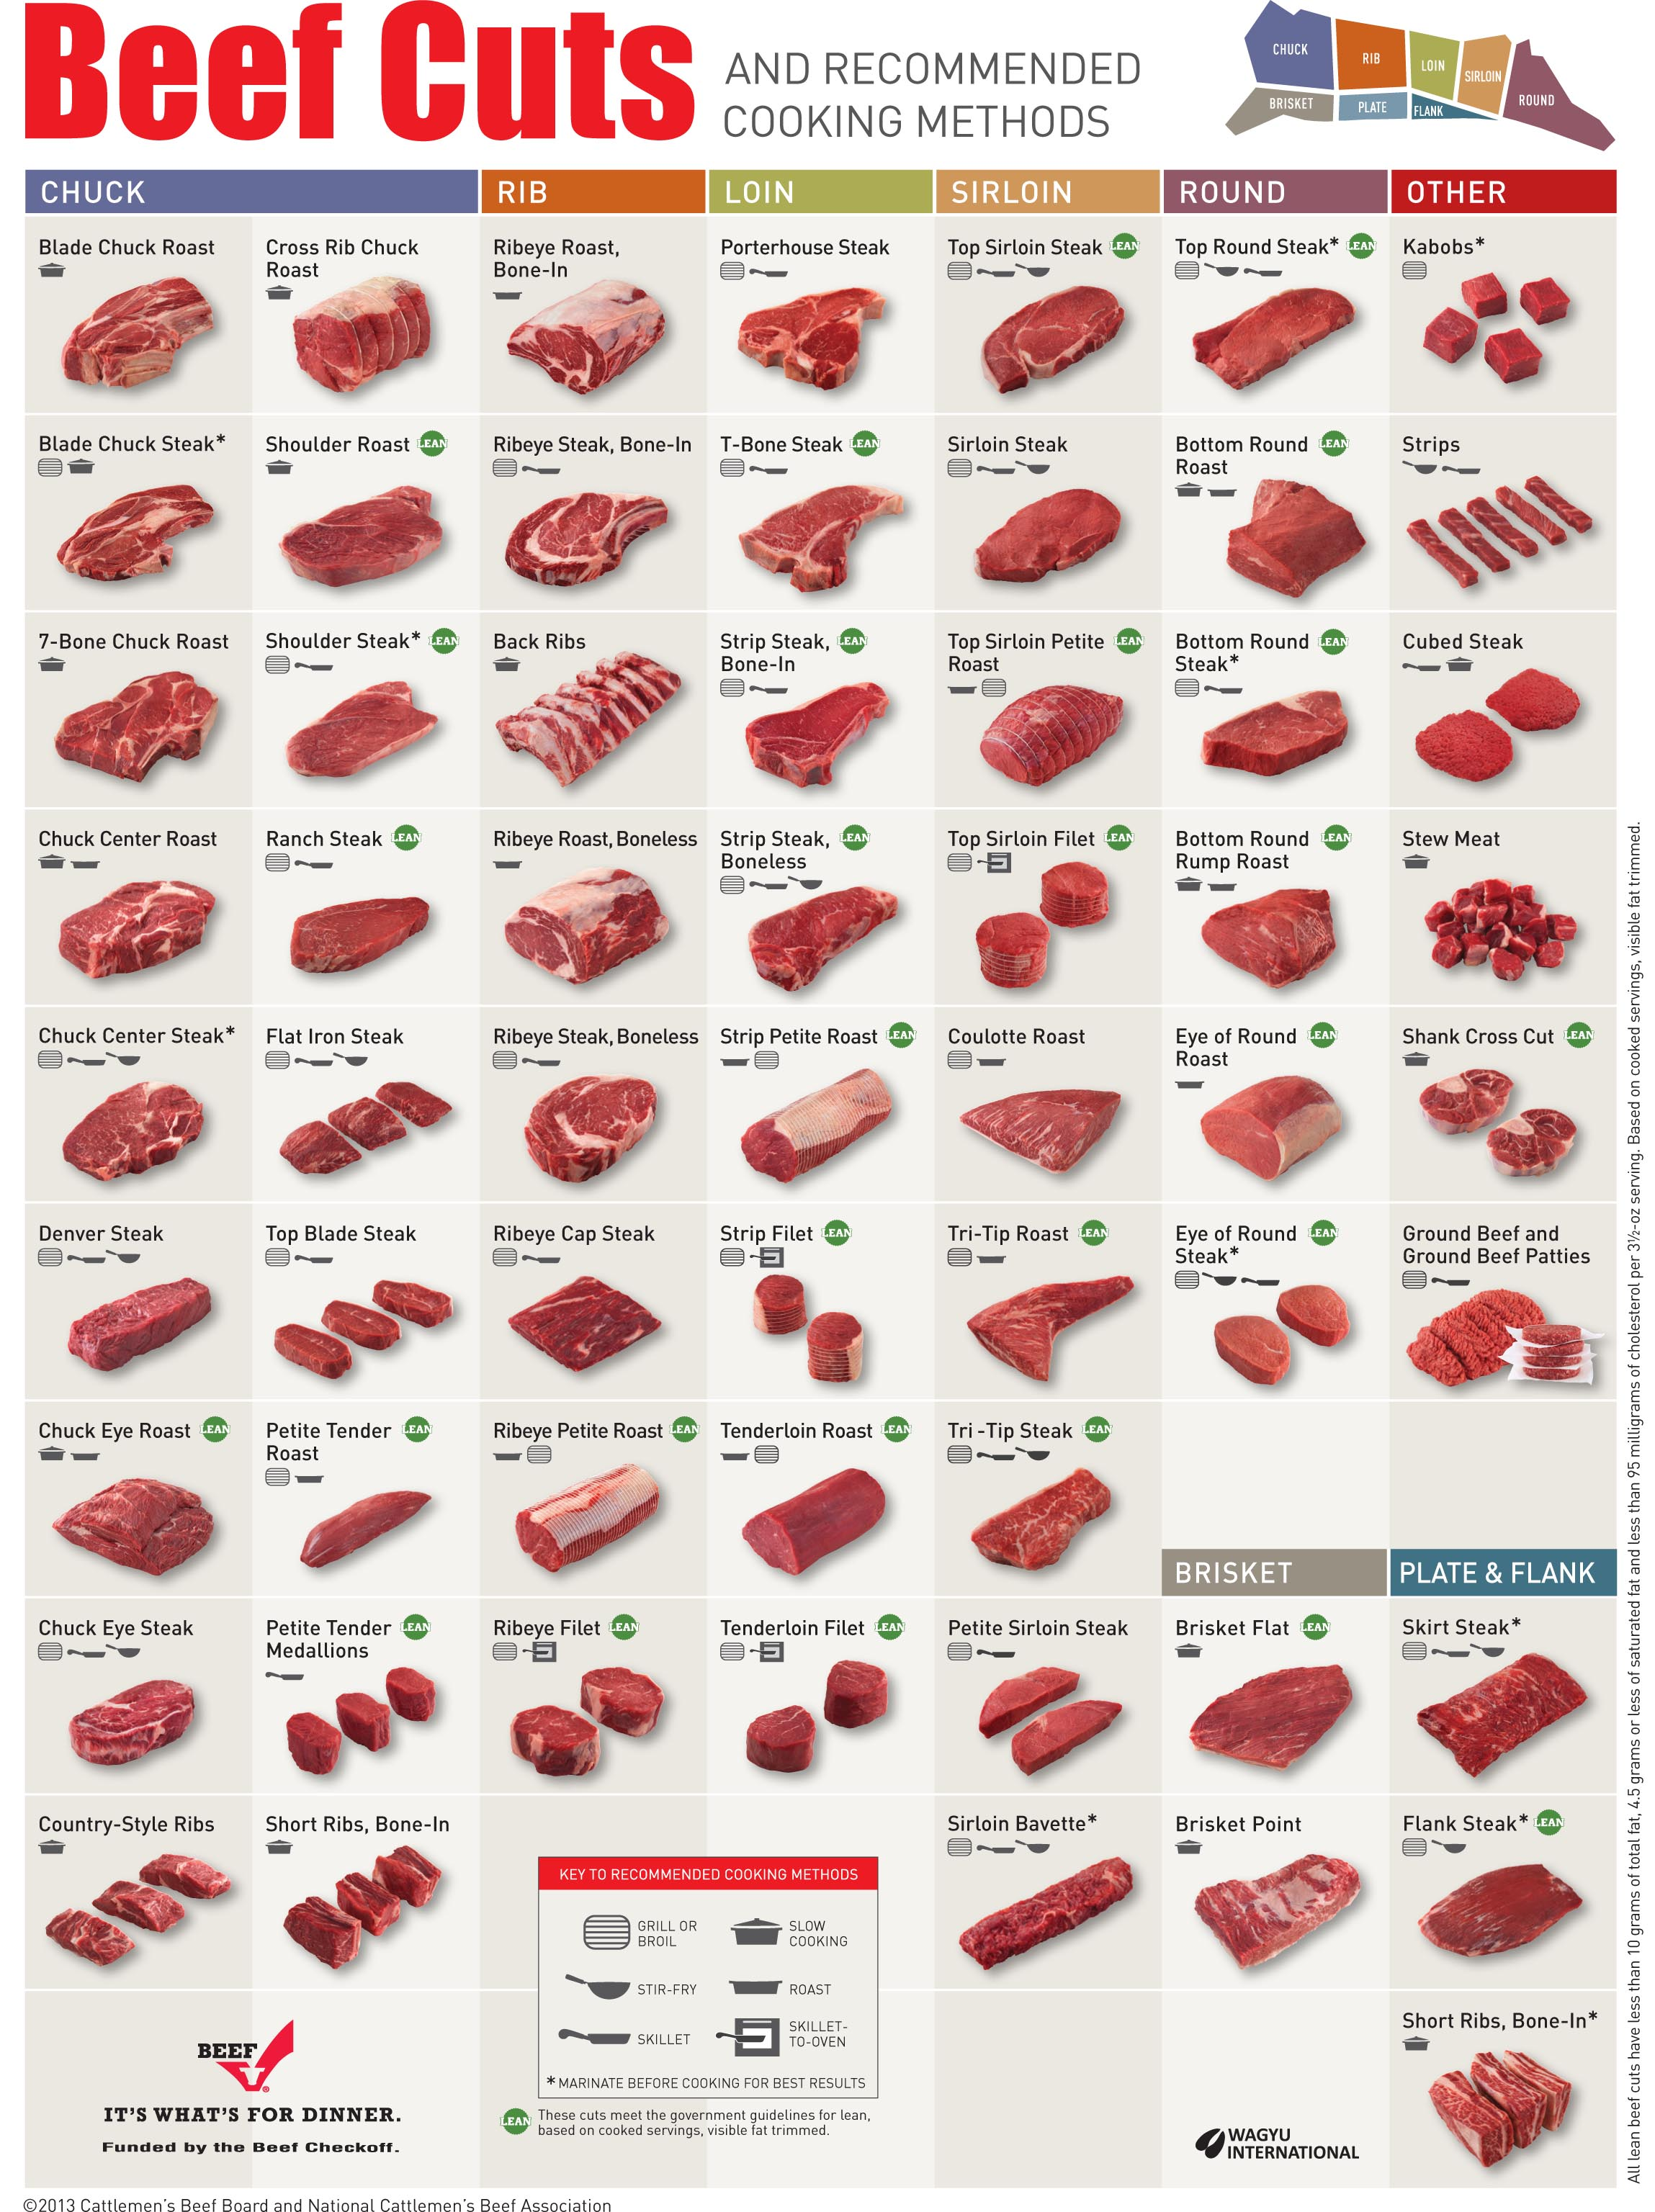 Beef cuts and recommended methods of cokking in USA on poster